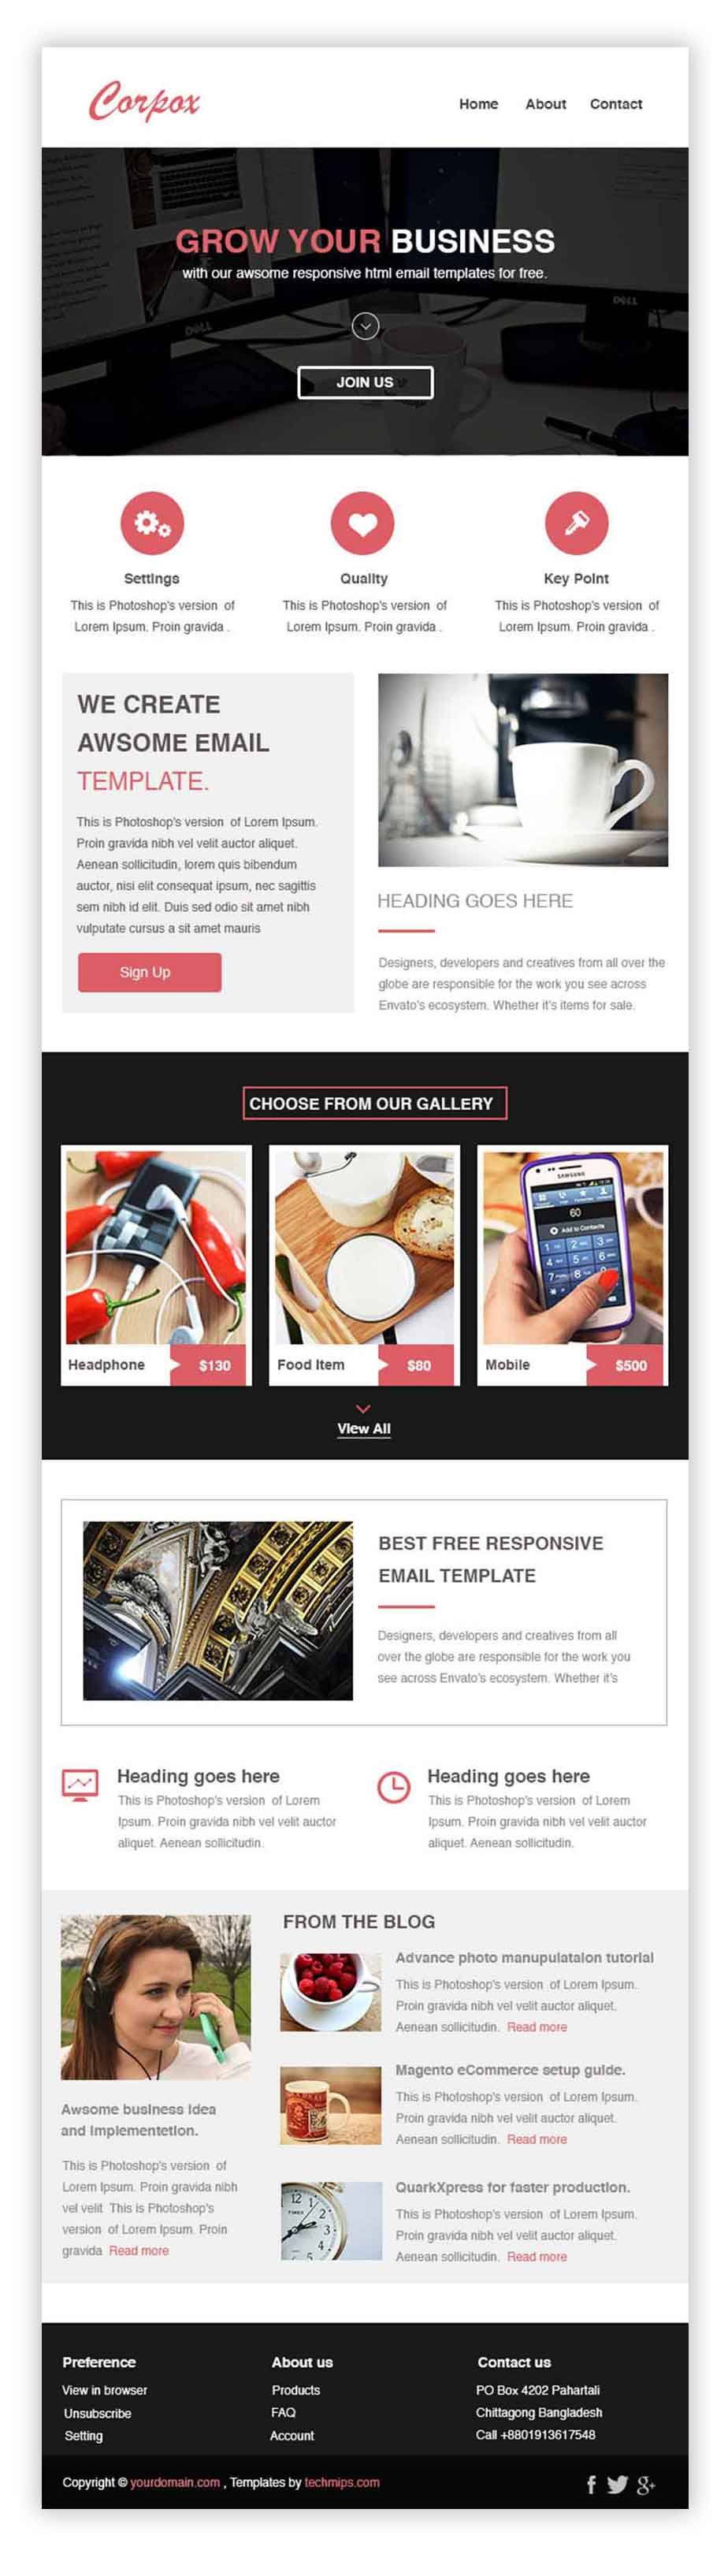 Corpox Is Our Second Free Responsive Html Email Newsletter Templates